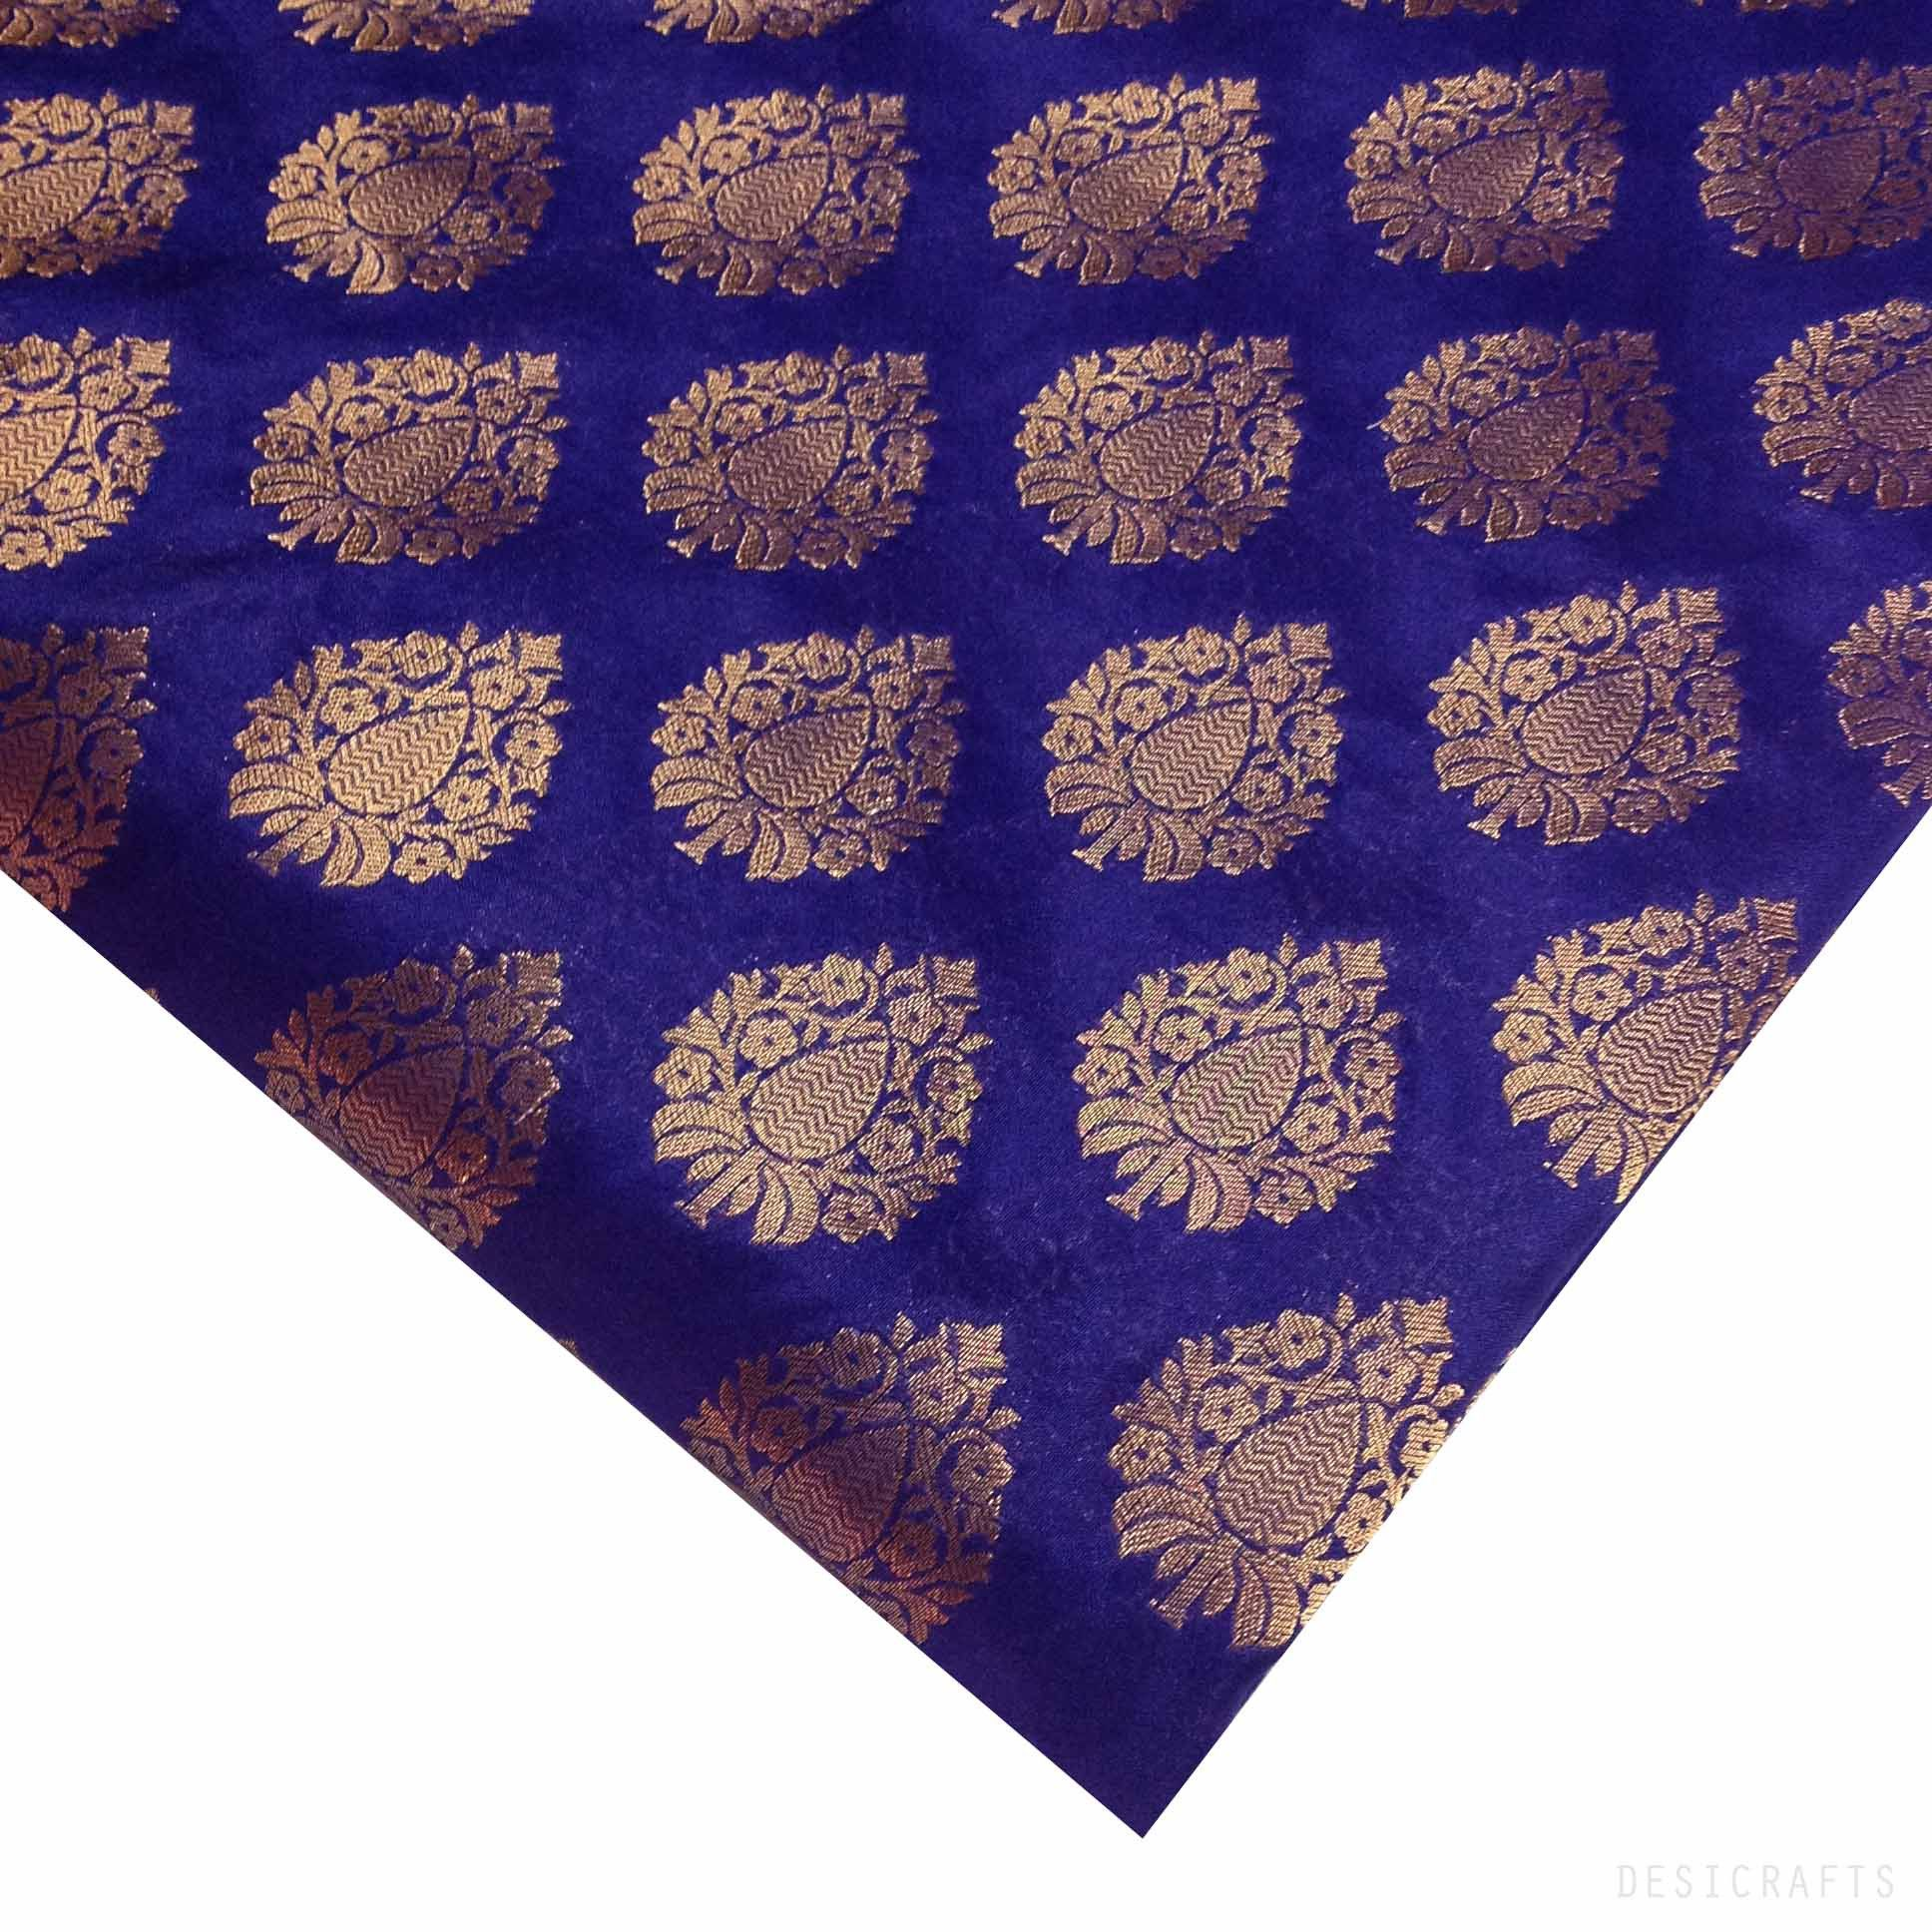 Blue and Gold Jacquard Silk Fabric – DesiCrafts   borders ...